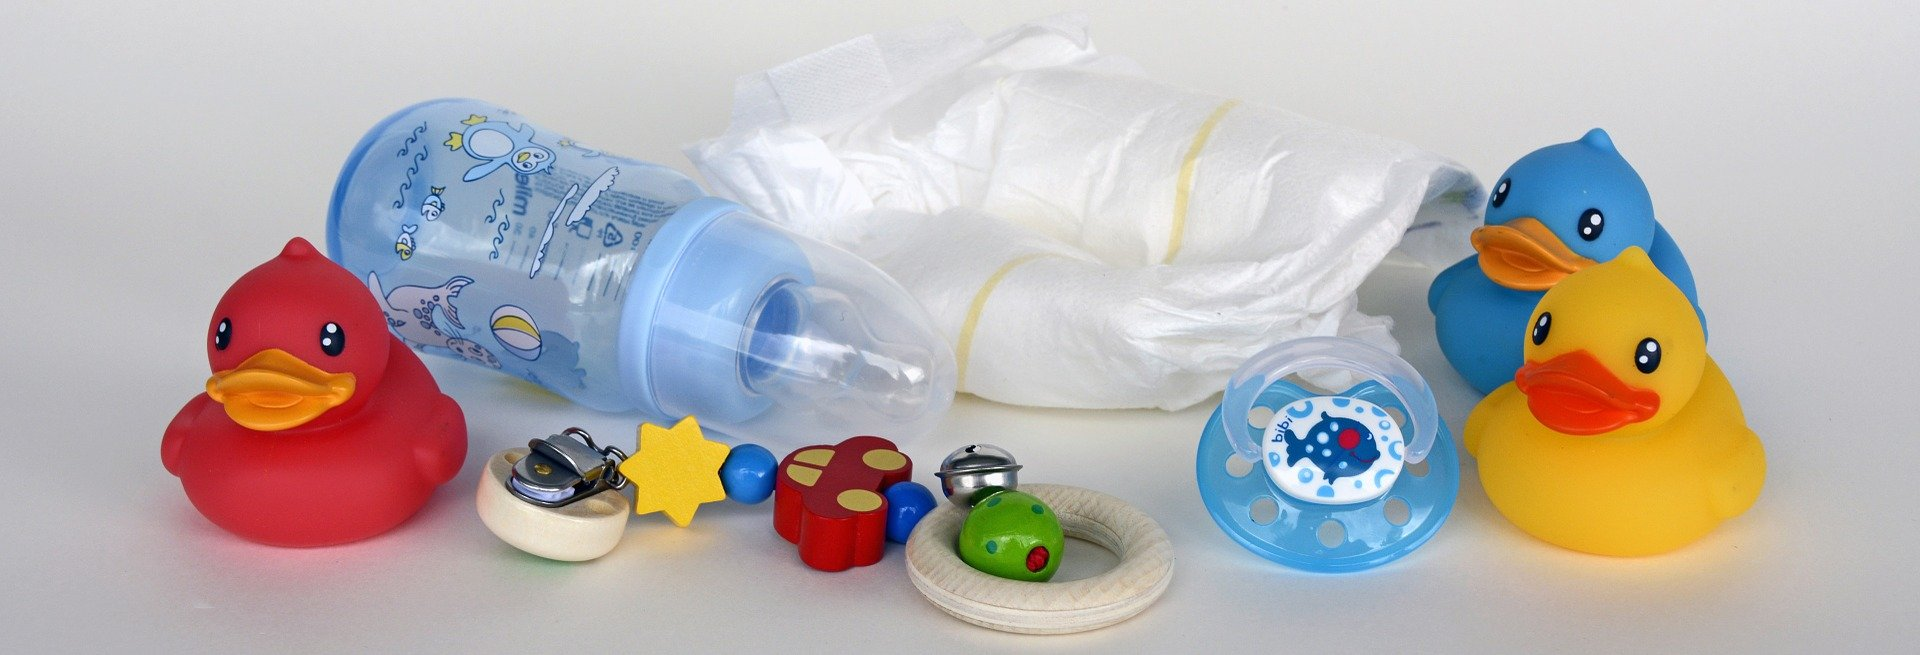 Ducks, Toy, Baby Bottle, Diapers, Dummy, Pacifier Chain